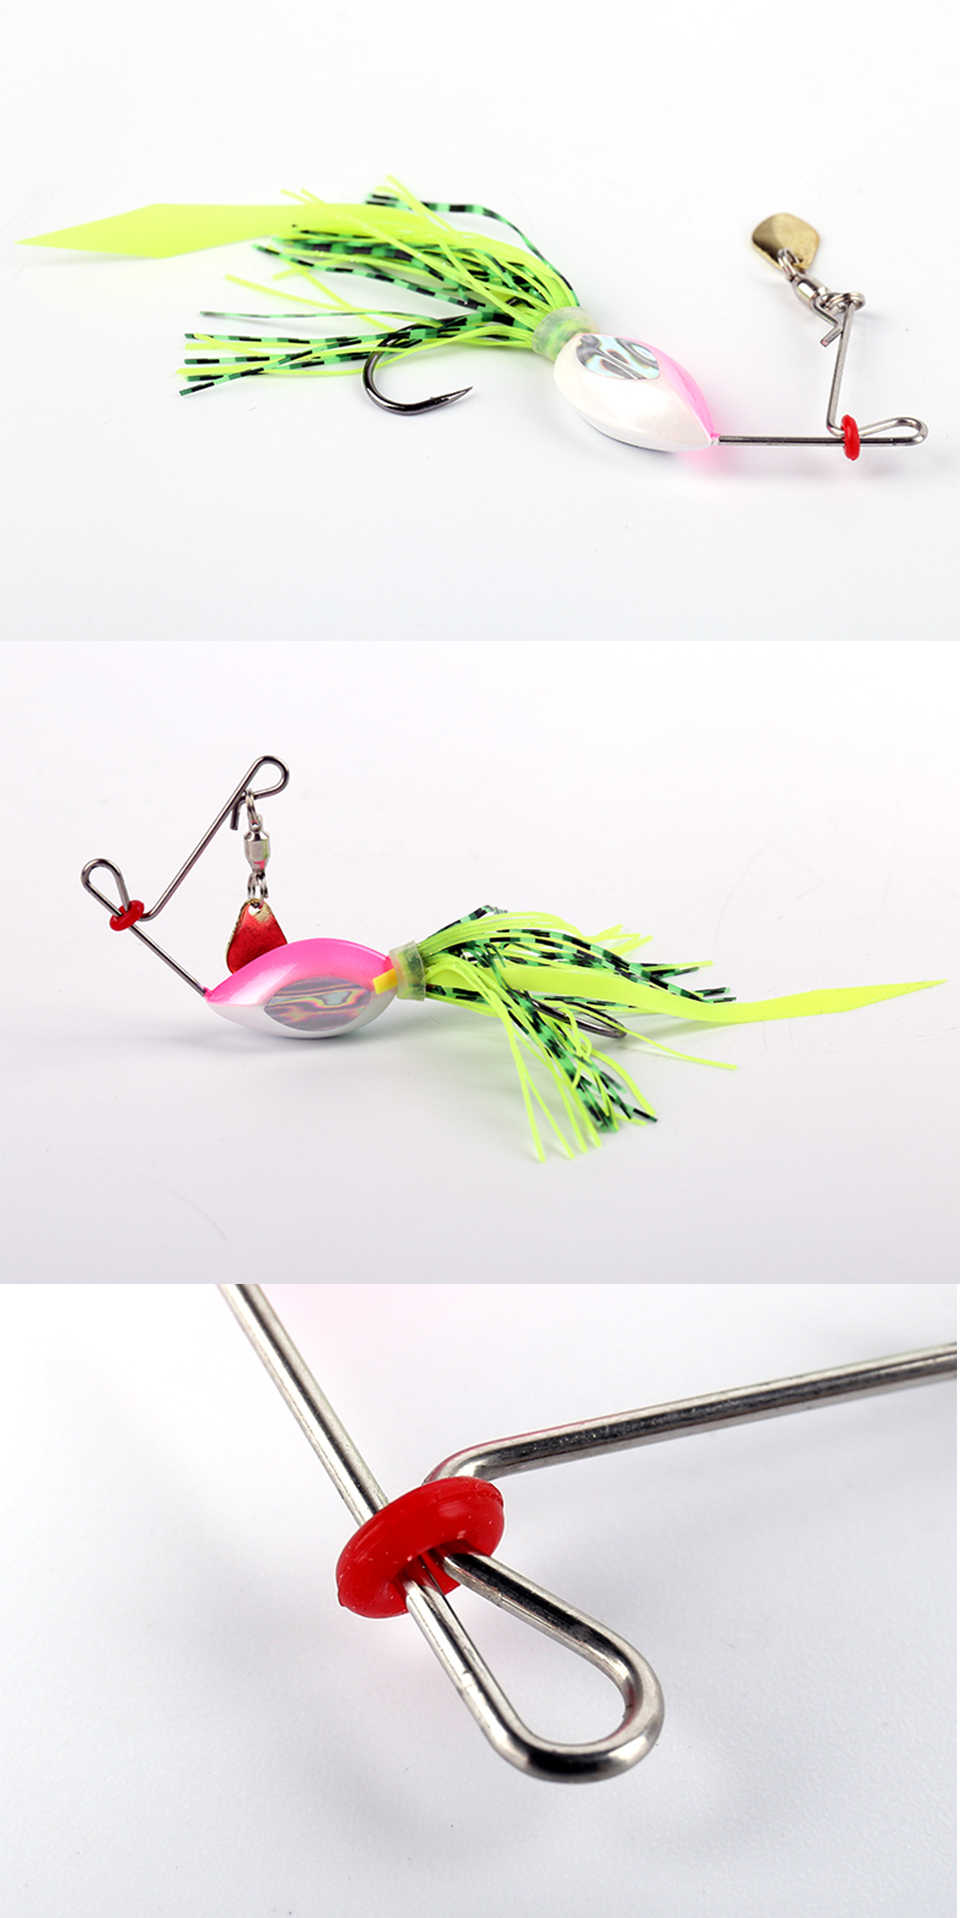 Kingdom Bei Xuan&Spinner Baits Fishing Lures 1pcsbag Hard Bait 6g 13g Rotating Sequins Buzzbait Model 4003 Fishing Tackle       (1)